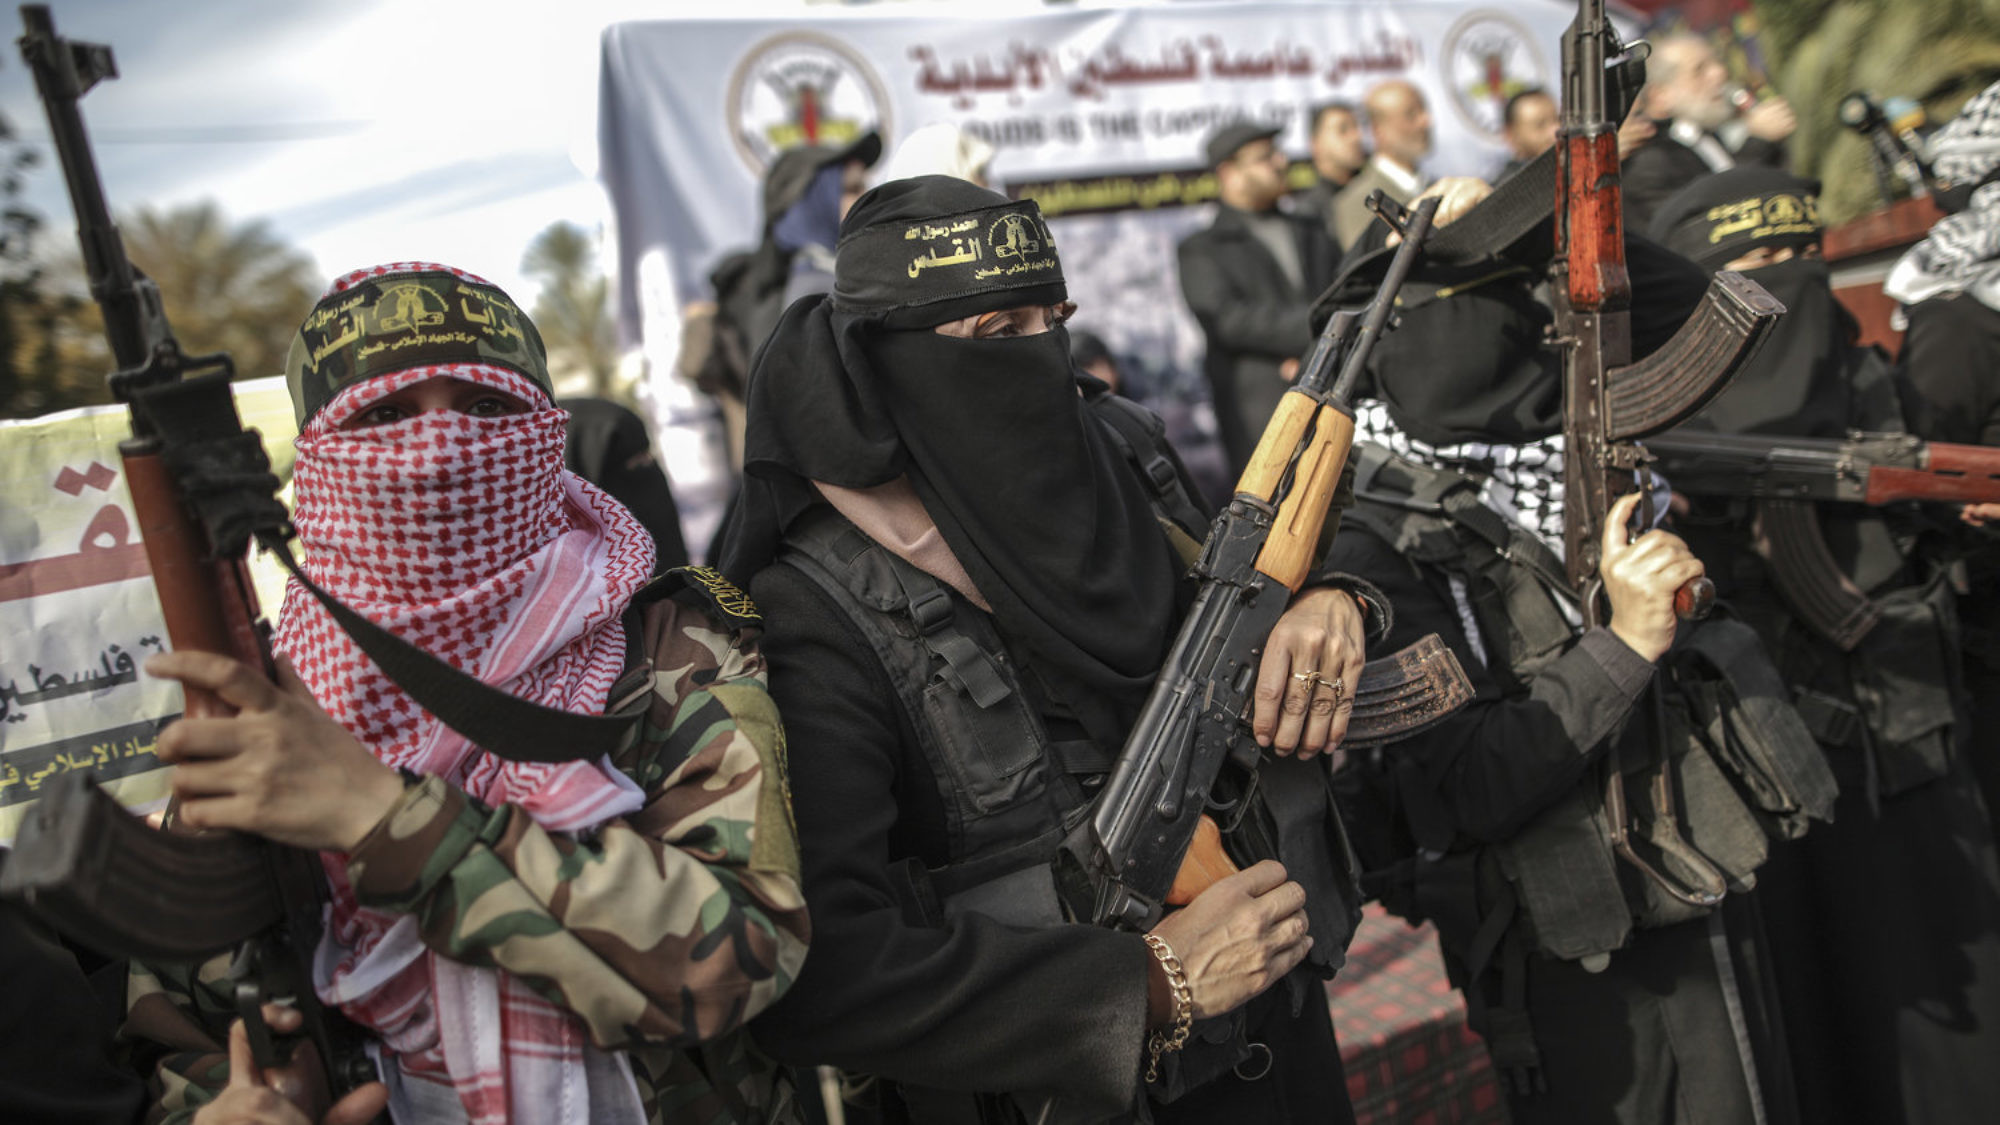 Armed female members of the militant Palestinian group Islamic Jihad. Credit: By Wissam Nassar/Flash90